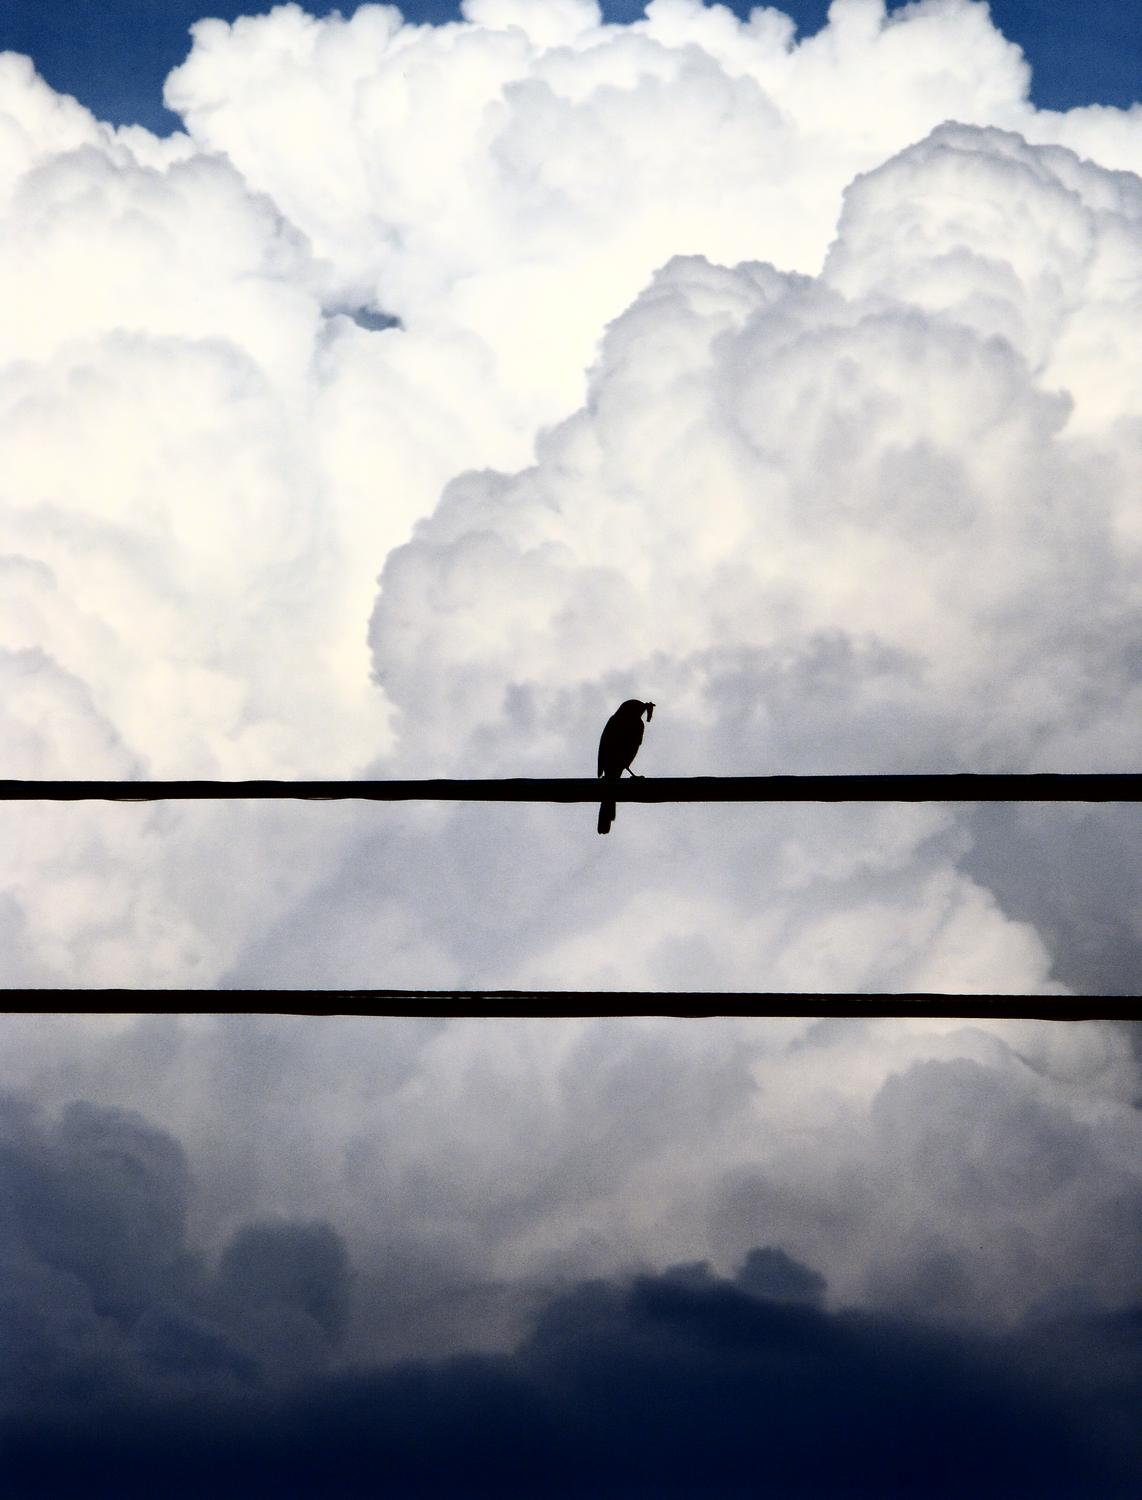 - A bird on the wire - #2 - Techno-Impressionist Museum - Techno-Impressionism - art - beautiful - photo photography picture - by Tony Karp